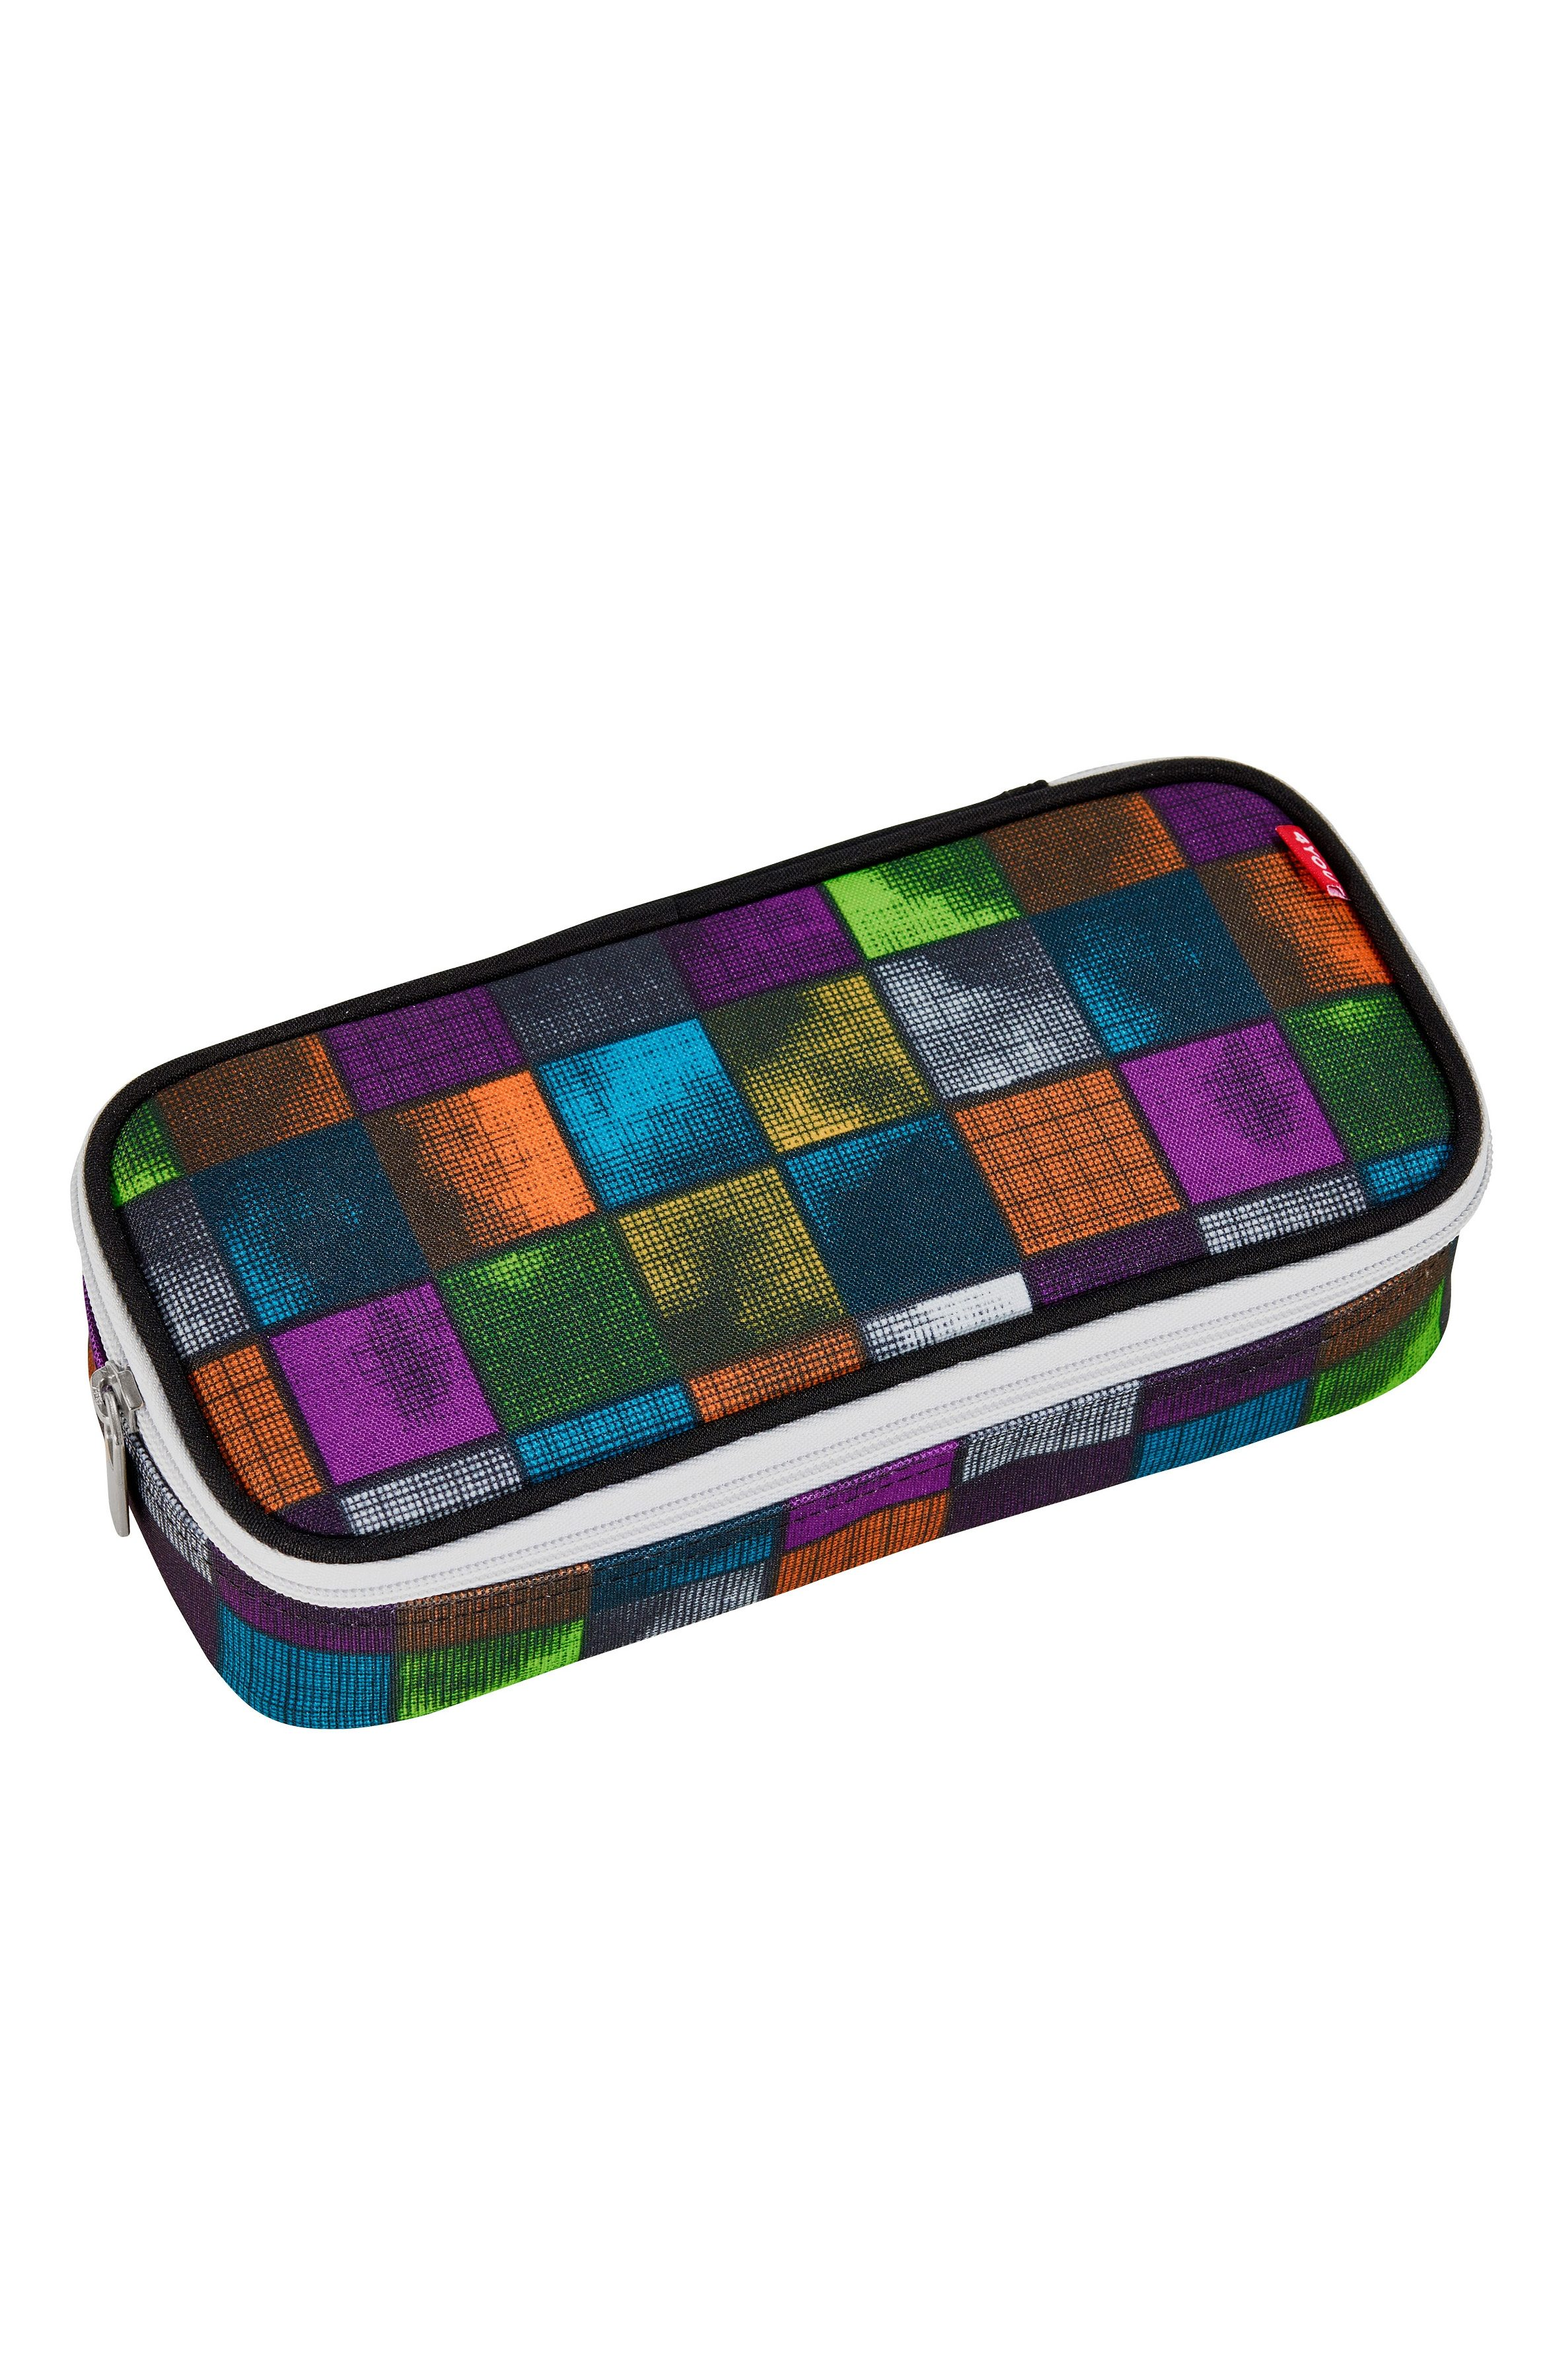 4YOU Mäppchen mit Geodreieck®, Miami Squares, »Pencil Case«